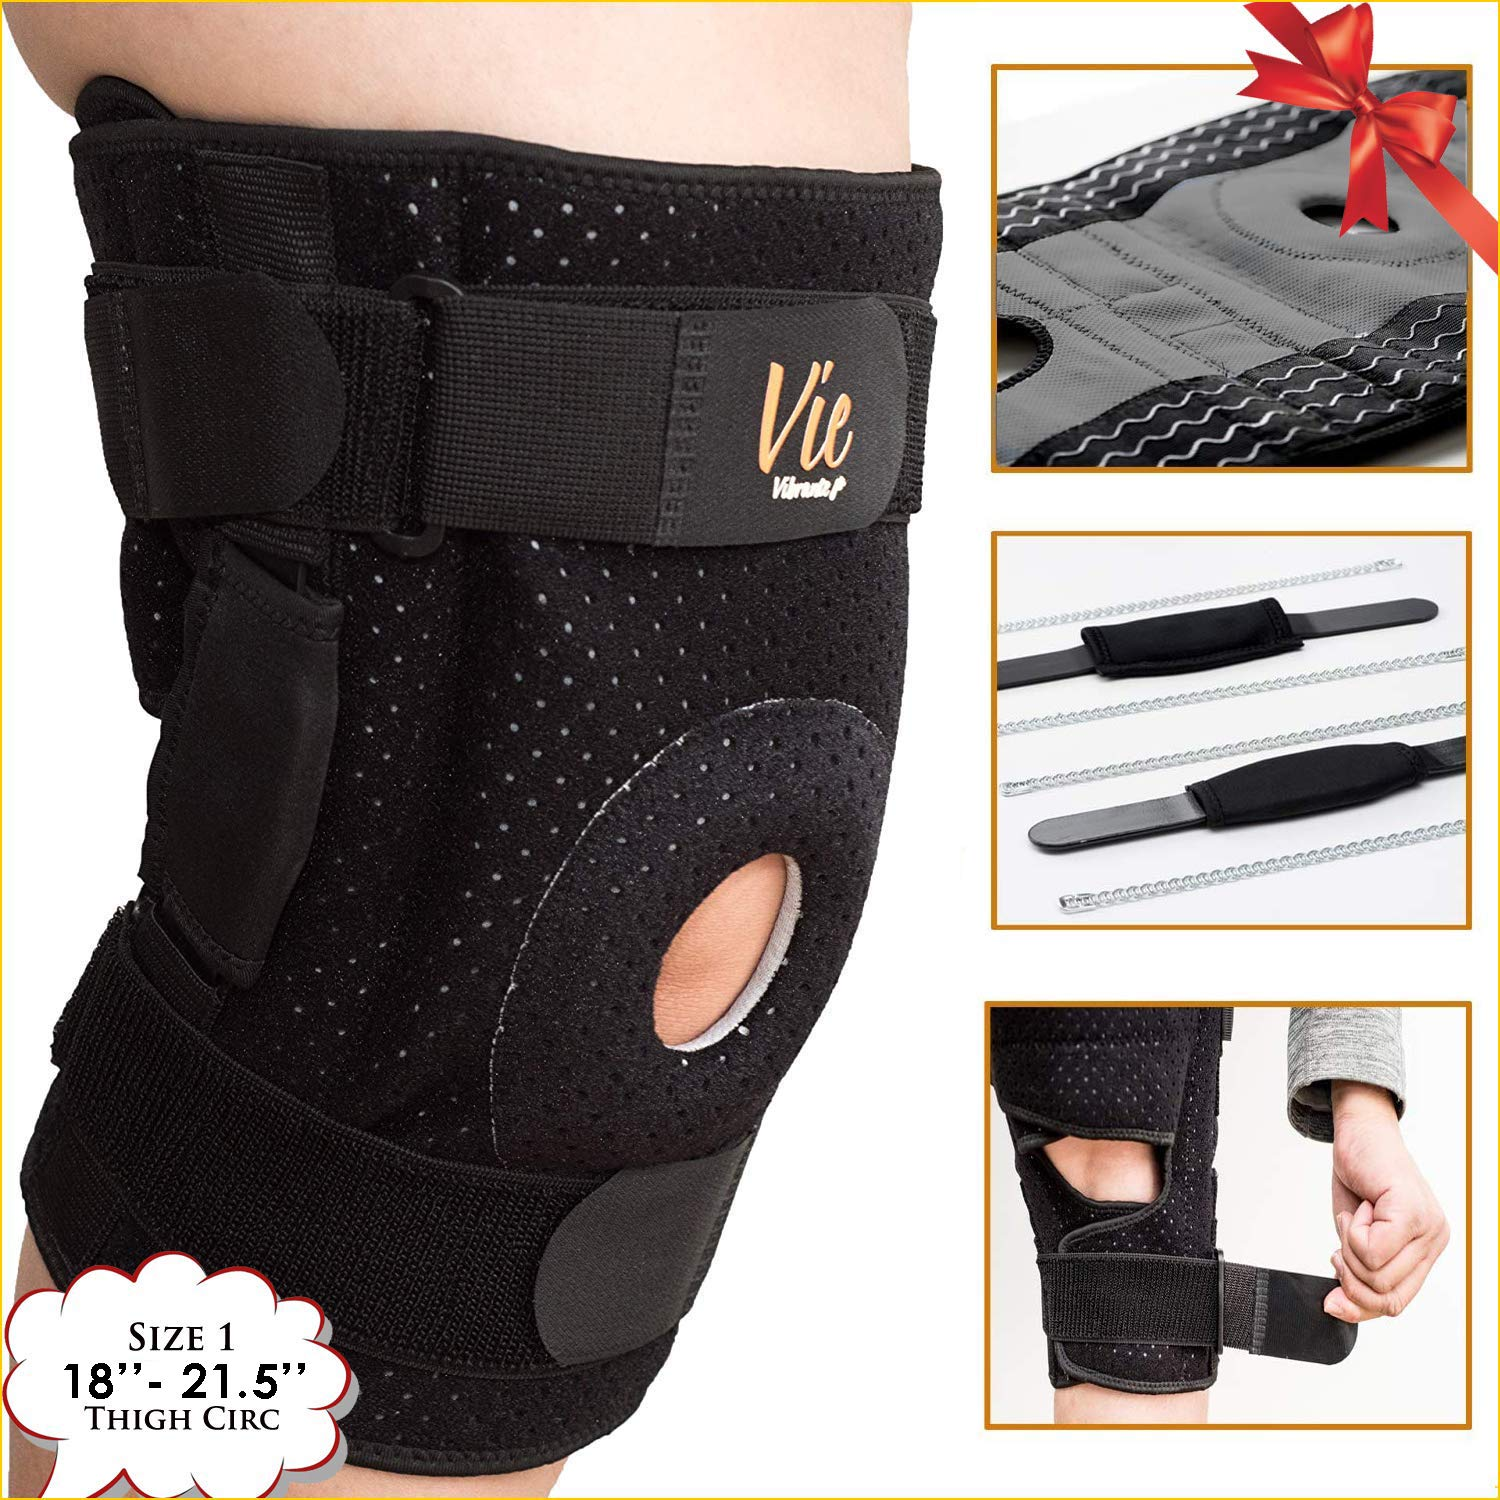 Patella Stabilizing Knee Brace - Newly Engineered Knee Braces with Enhancement on Flexibility, Extra Supportive, Non-Slip and Non Bulky - Vie Vibrante fits 18''-21.5'' Thigh Circumference, Black by VieVibrante